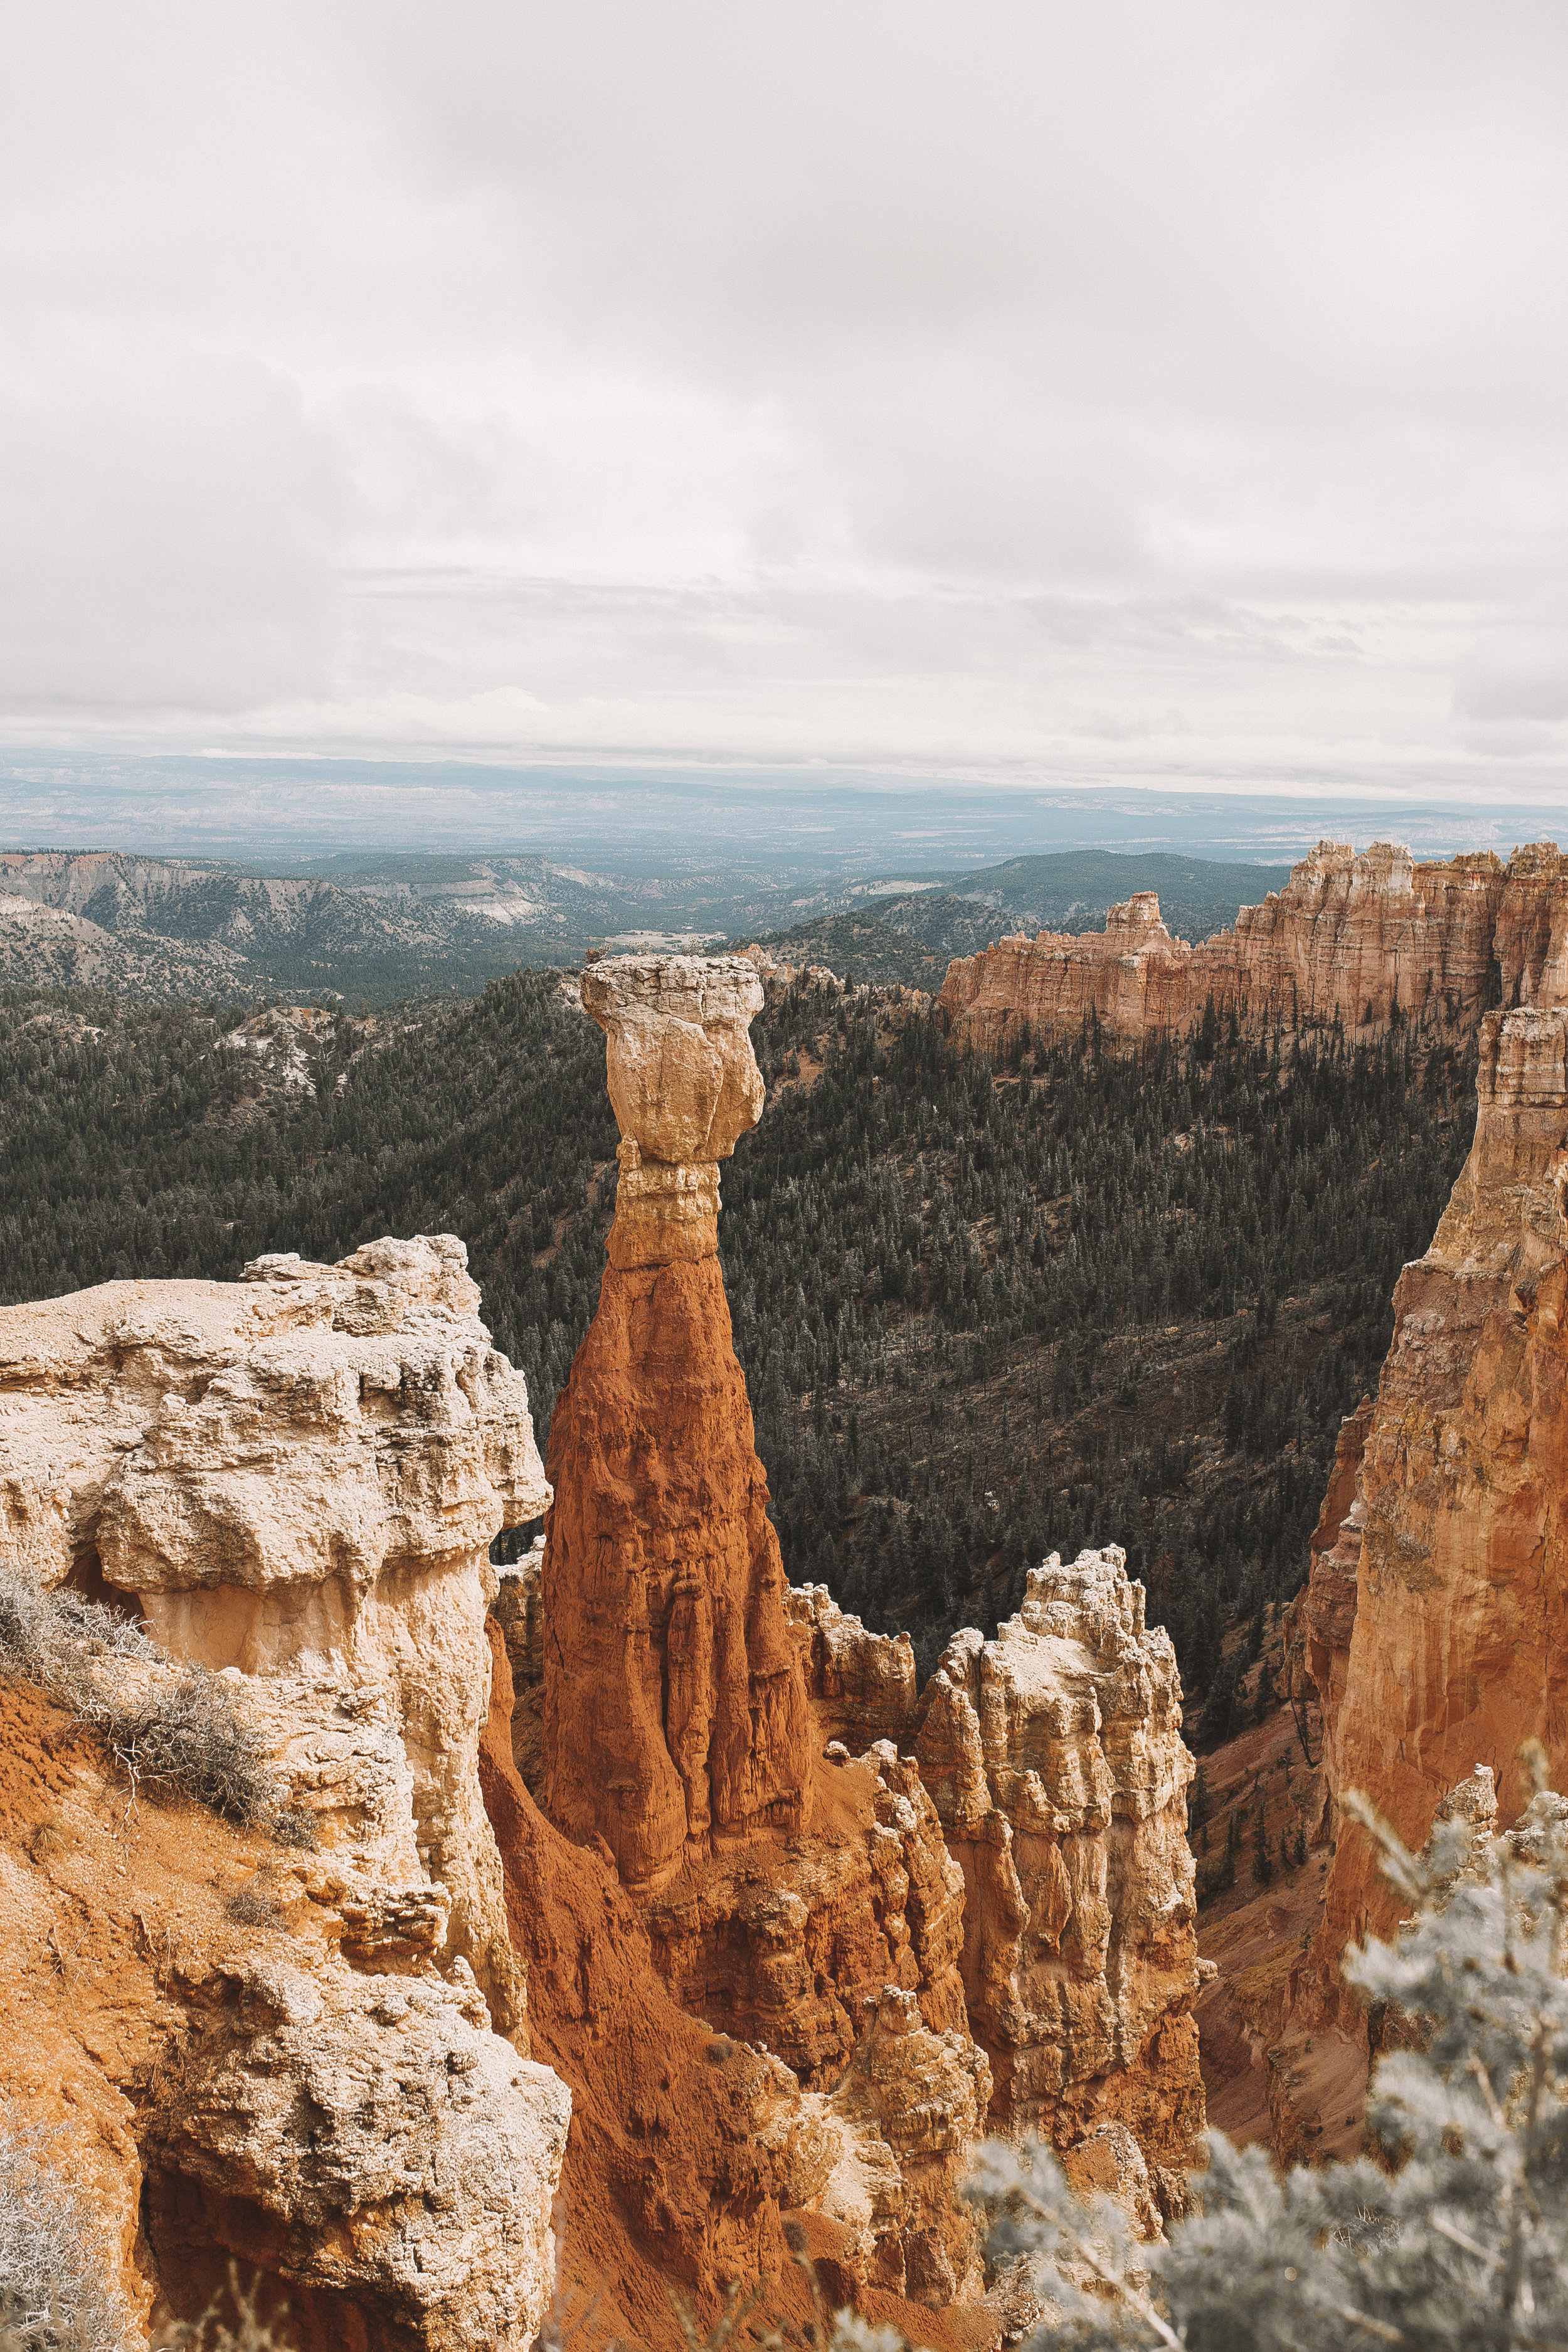 bryce canyon national park utah road trip-4.jpg